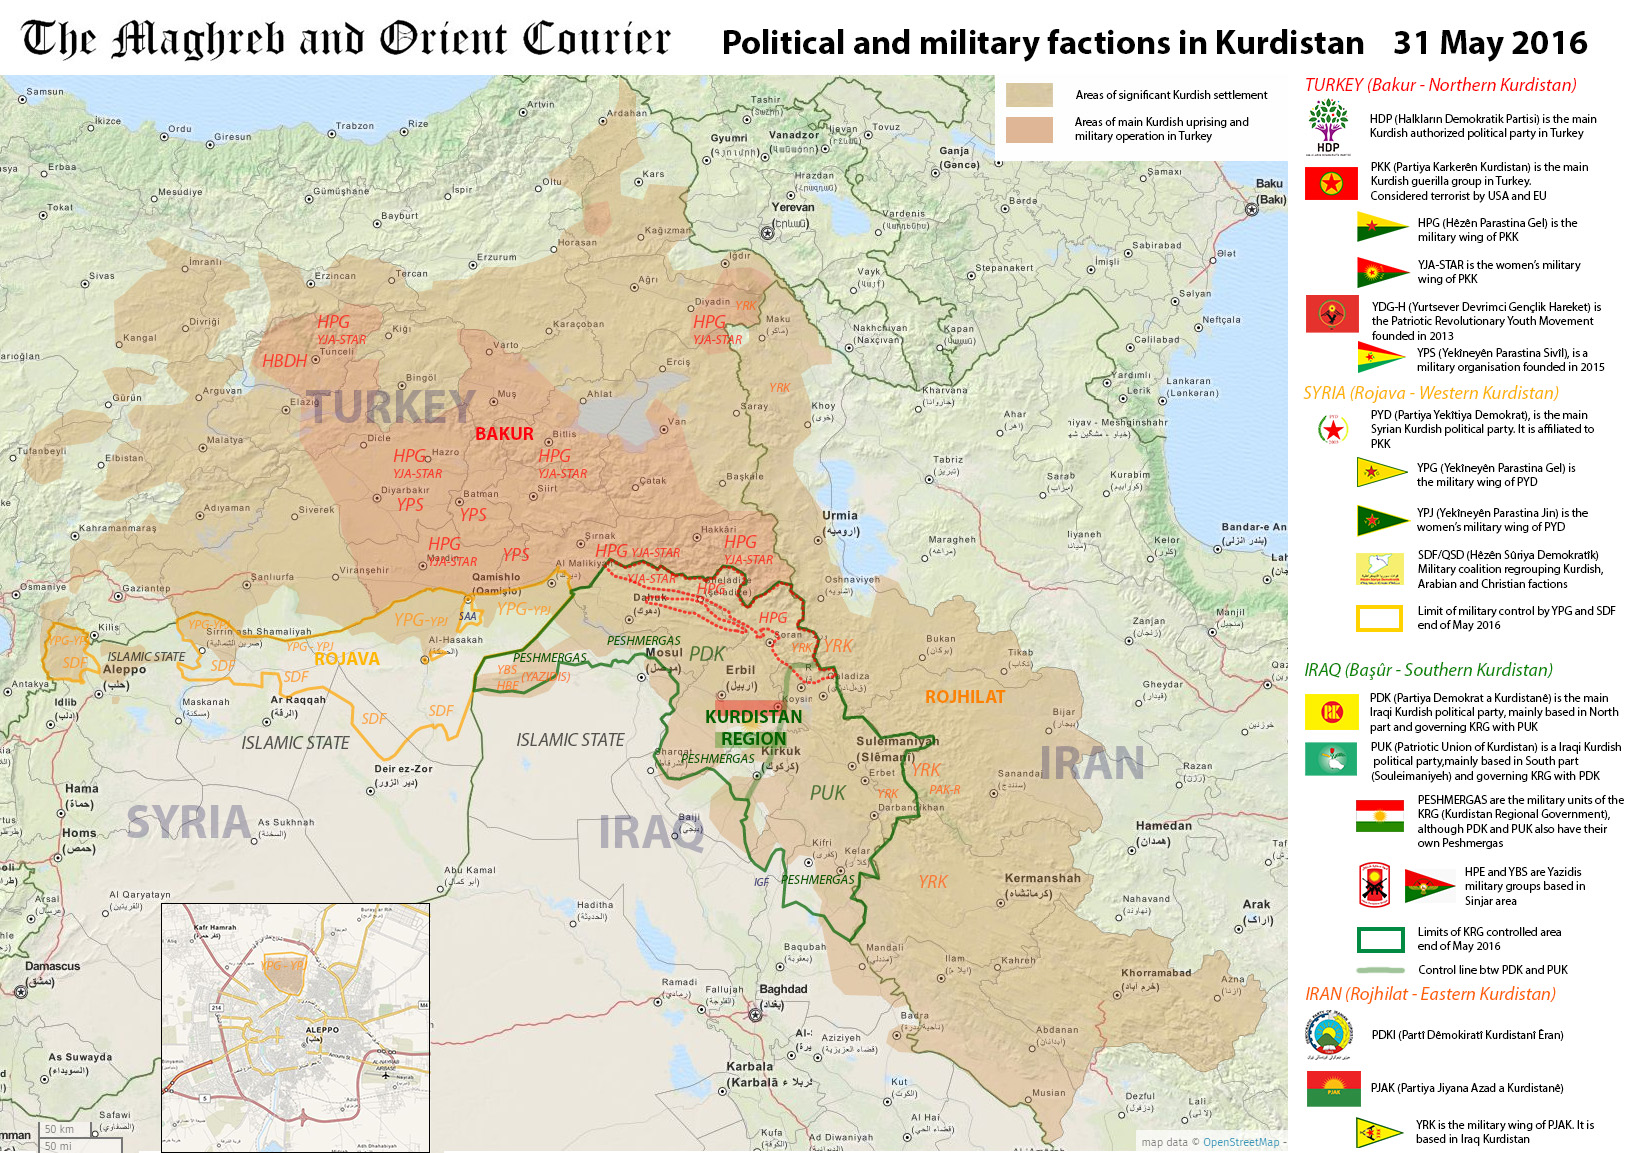 Arab world map kurdistan political and military factions in arab world map kurdistan may 2016 emmanuel pene 464729 gumiabroncs Image collections